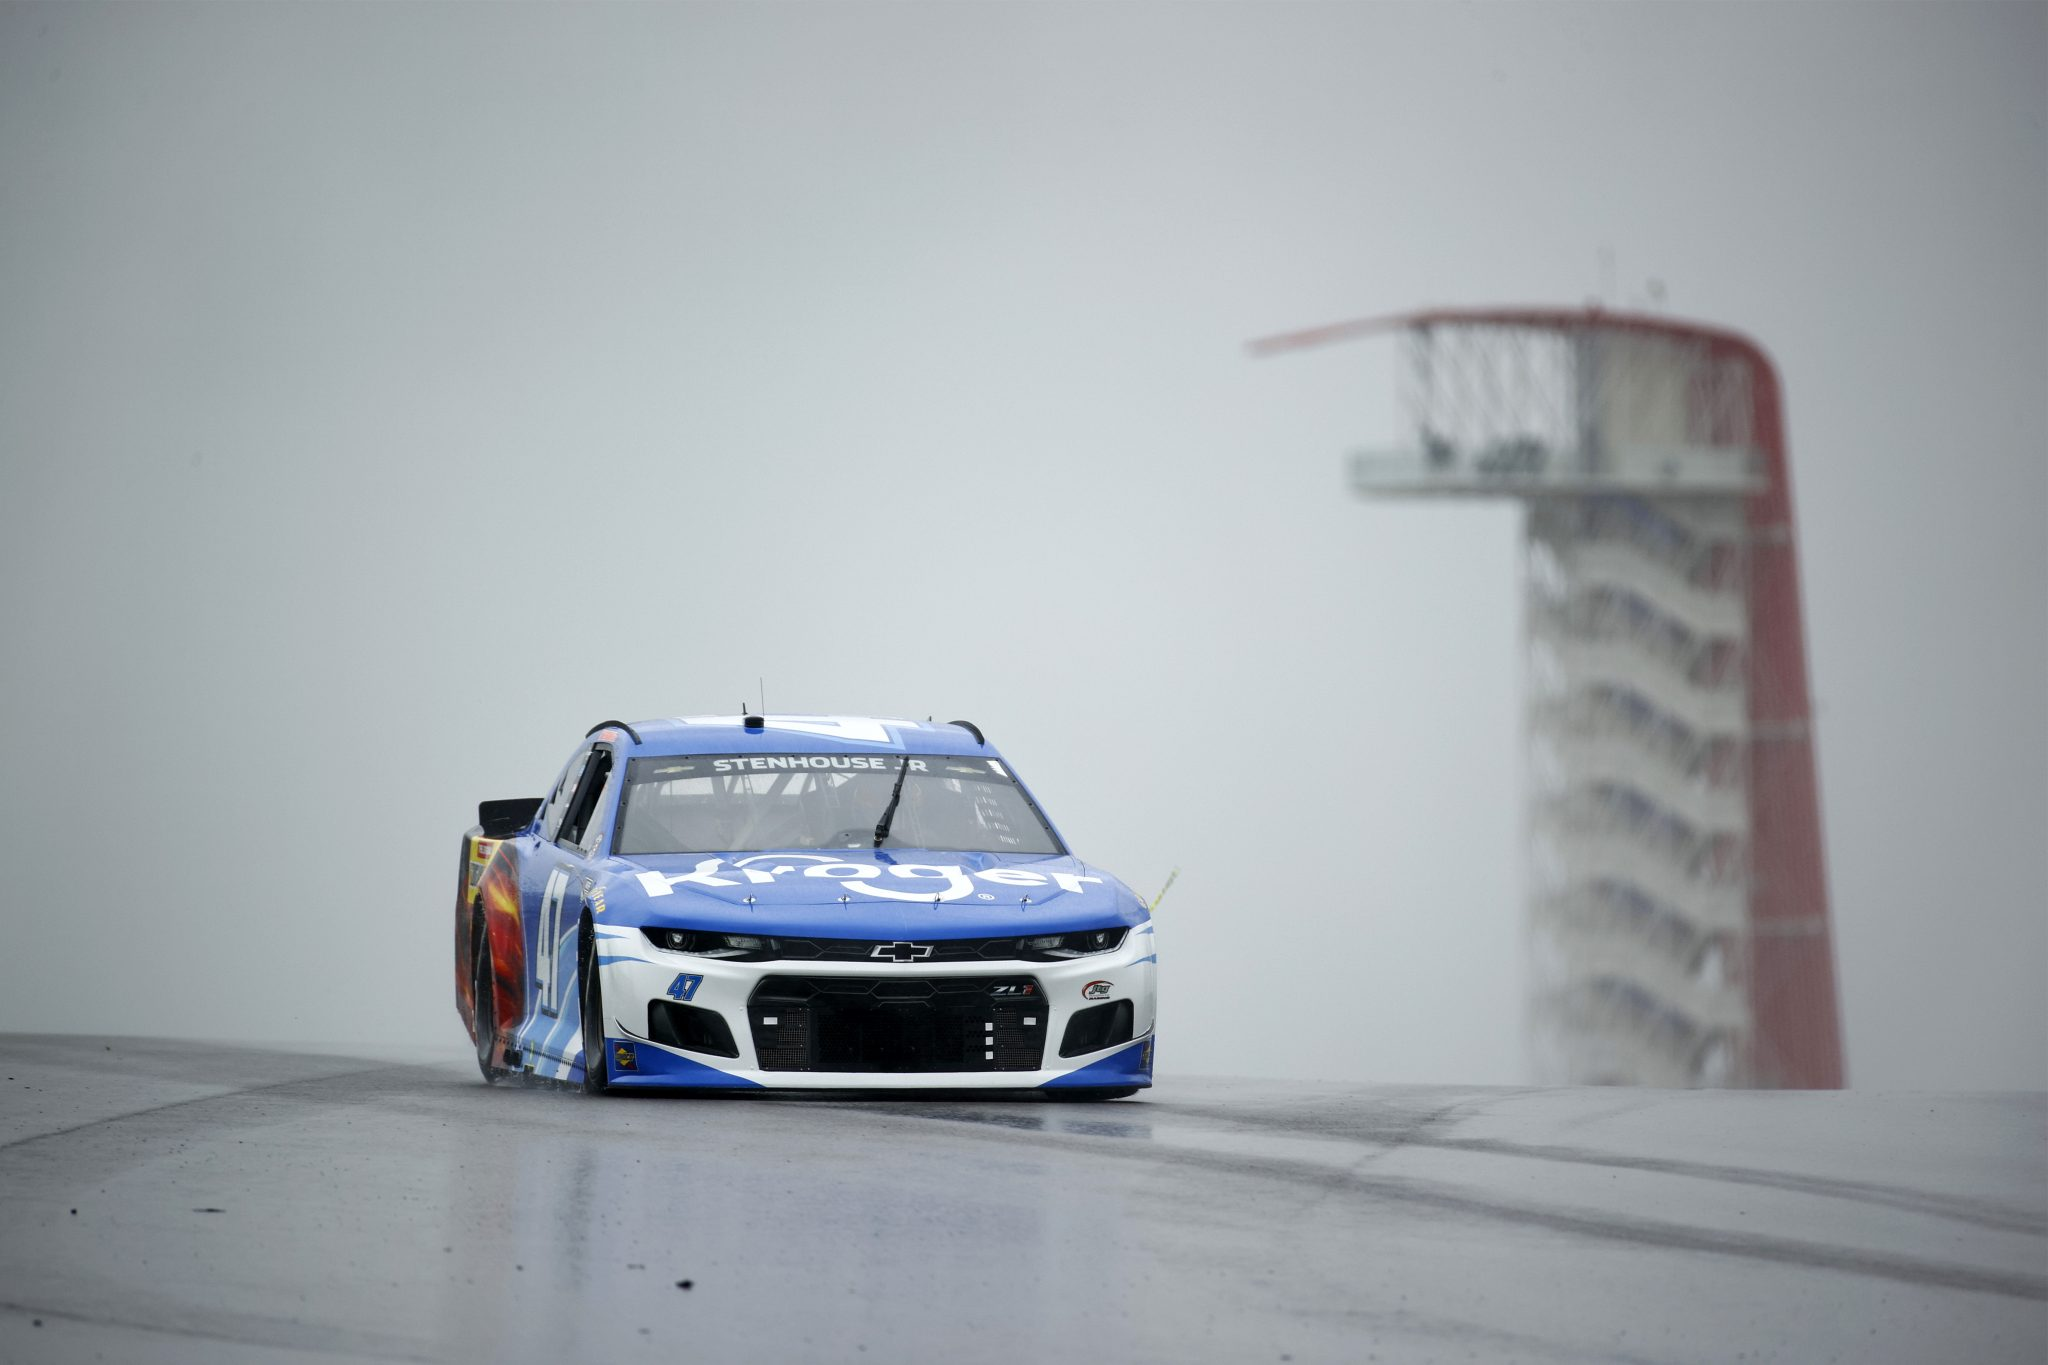 AUSTIN, TEXAS - MAY 22: Ricky Stenhouse Jr., driver of the #47 Kroger/Louisiana Hot Sauce Chevrolet, drives during practice for the NASCAR Cup Series EchoPark Texas Grand at Circuit of The Americas on May 22, 2021 in Austin, Texas. (Photo by Jared C. Tilton/Getty Images)   Getty Images